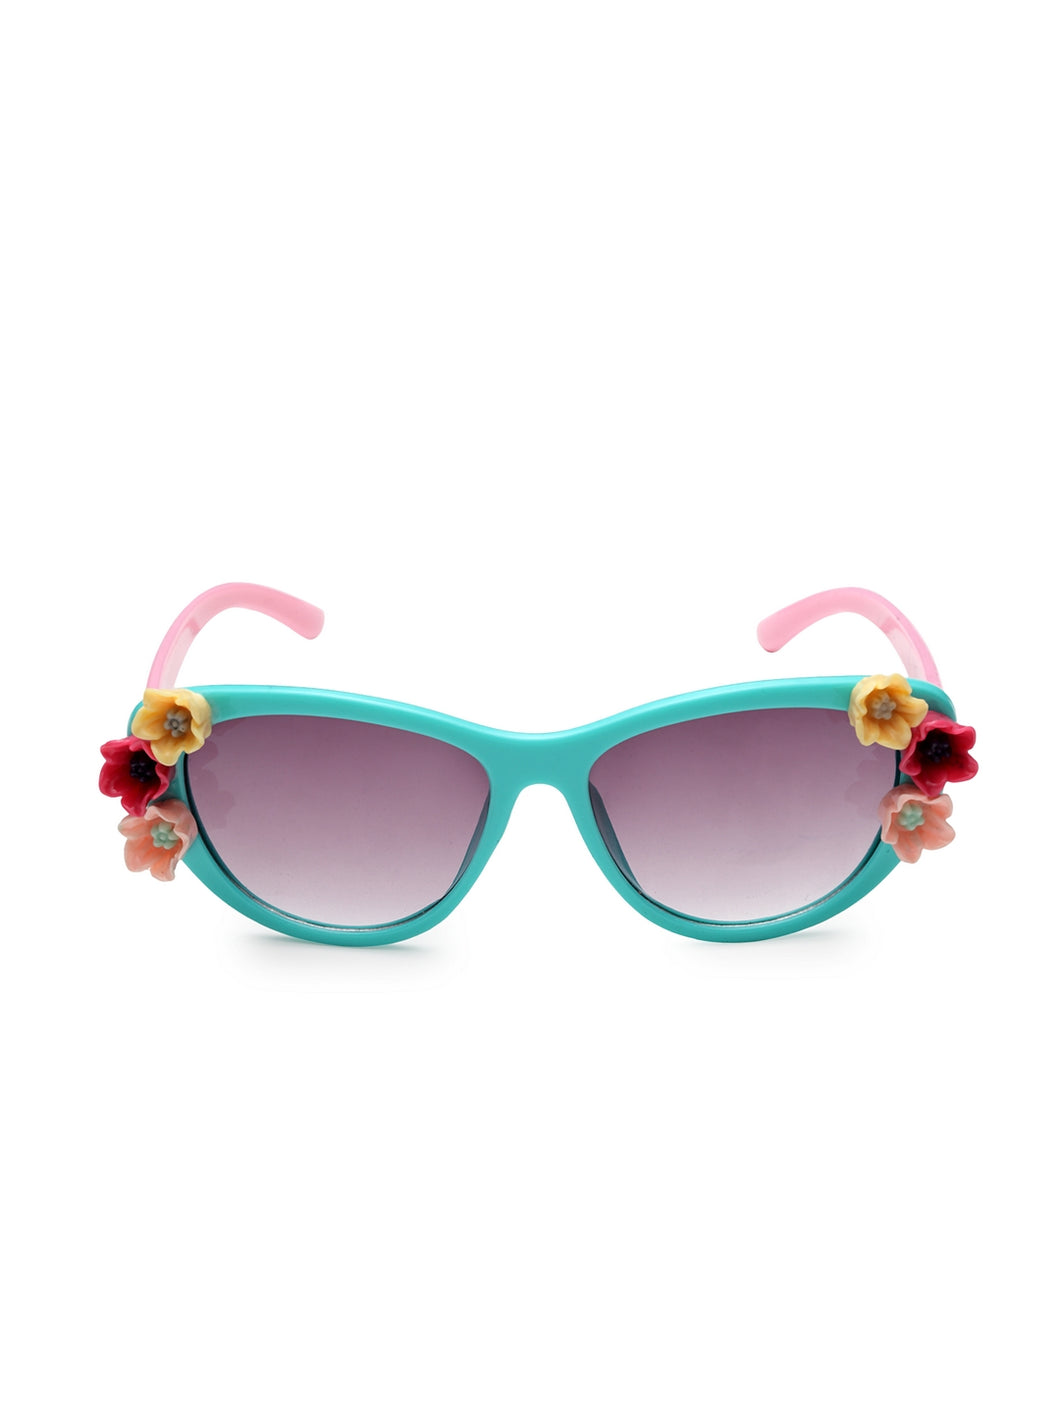 Stol'n Premium Attractive Fashionable UV-Protected Cat Eye Sunglasses - Aqua